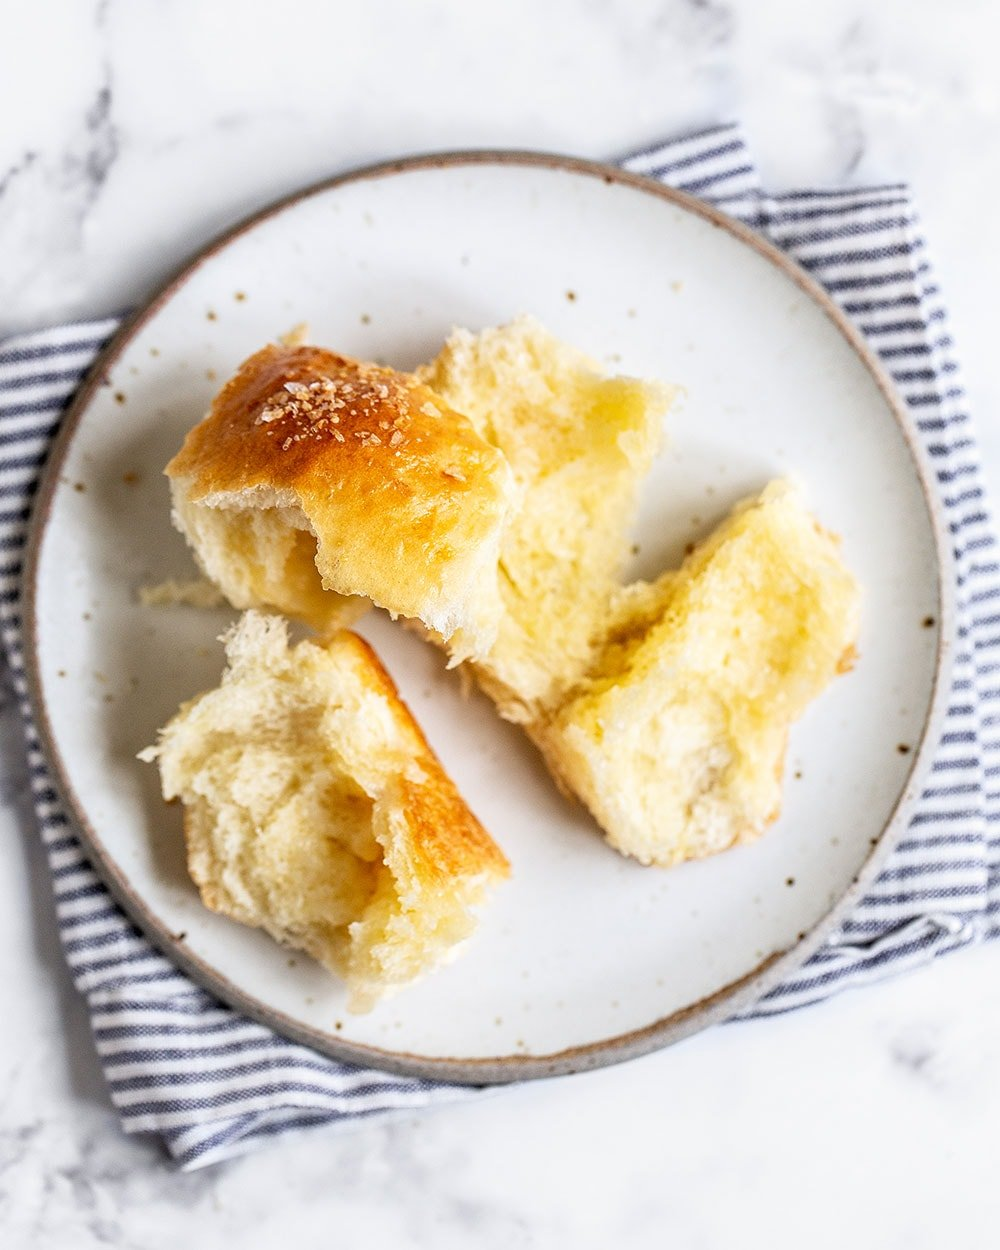 Homemade easy buttery dinner roll on a plate